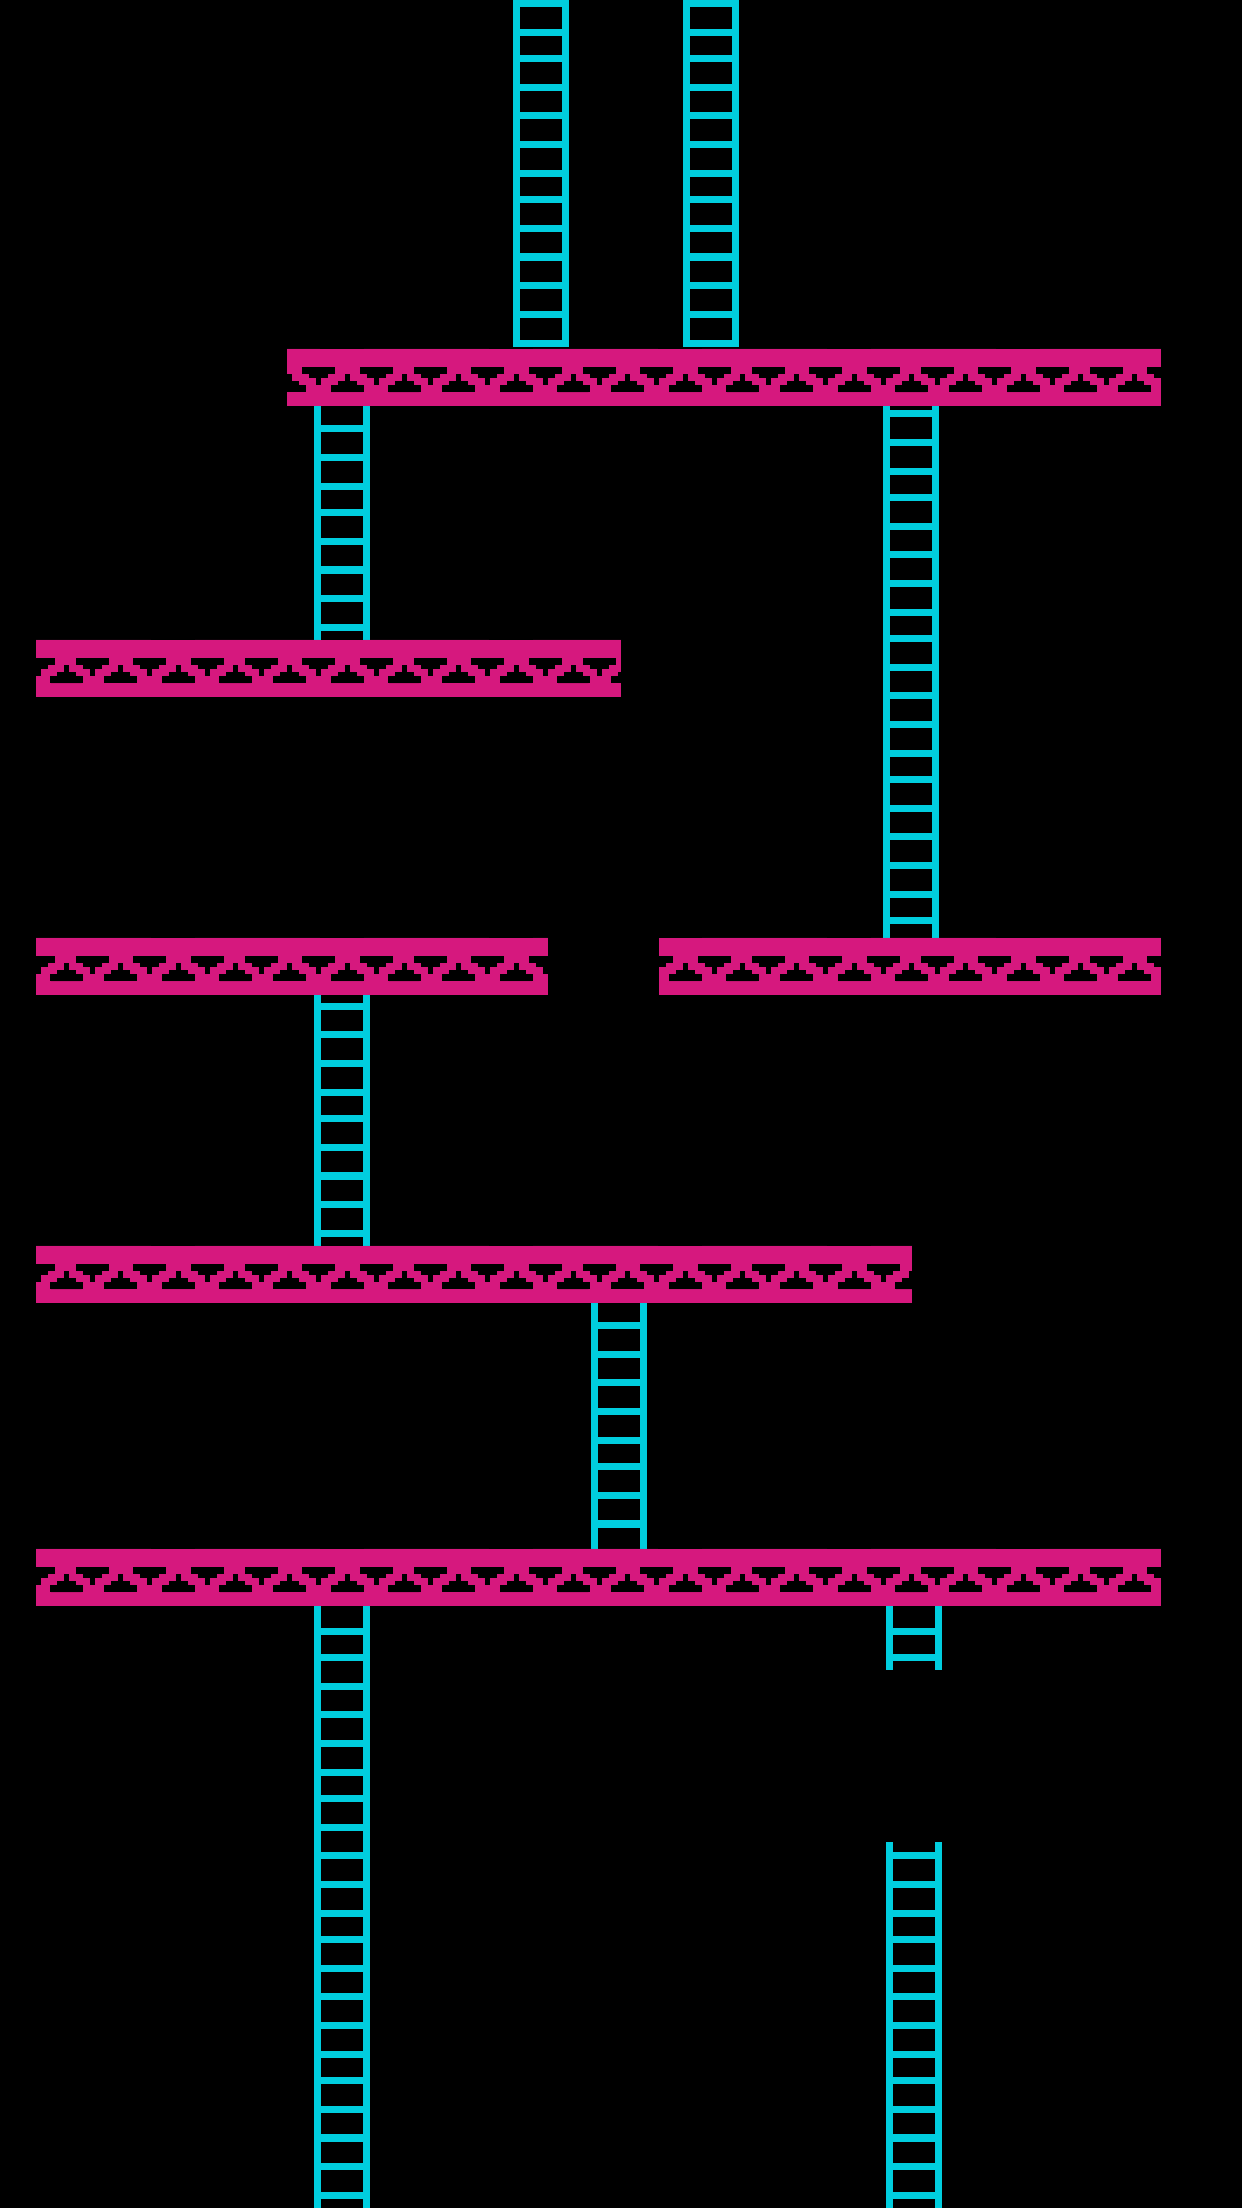 Donkey Kong Iphone Wallpapers Top Free Donkey Kong Iphone Backgrounds Wallpaperaccess